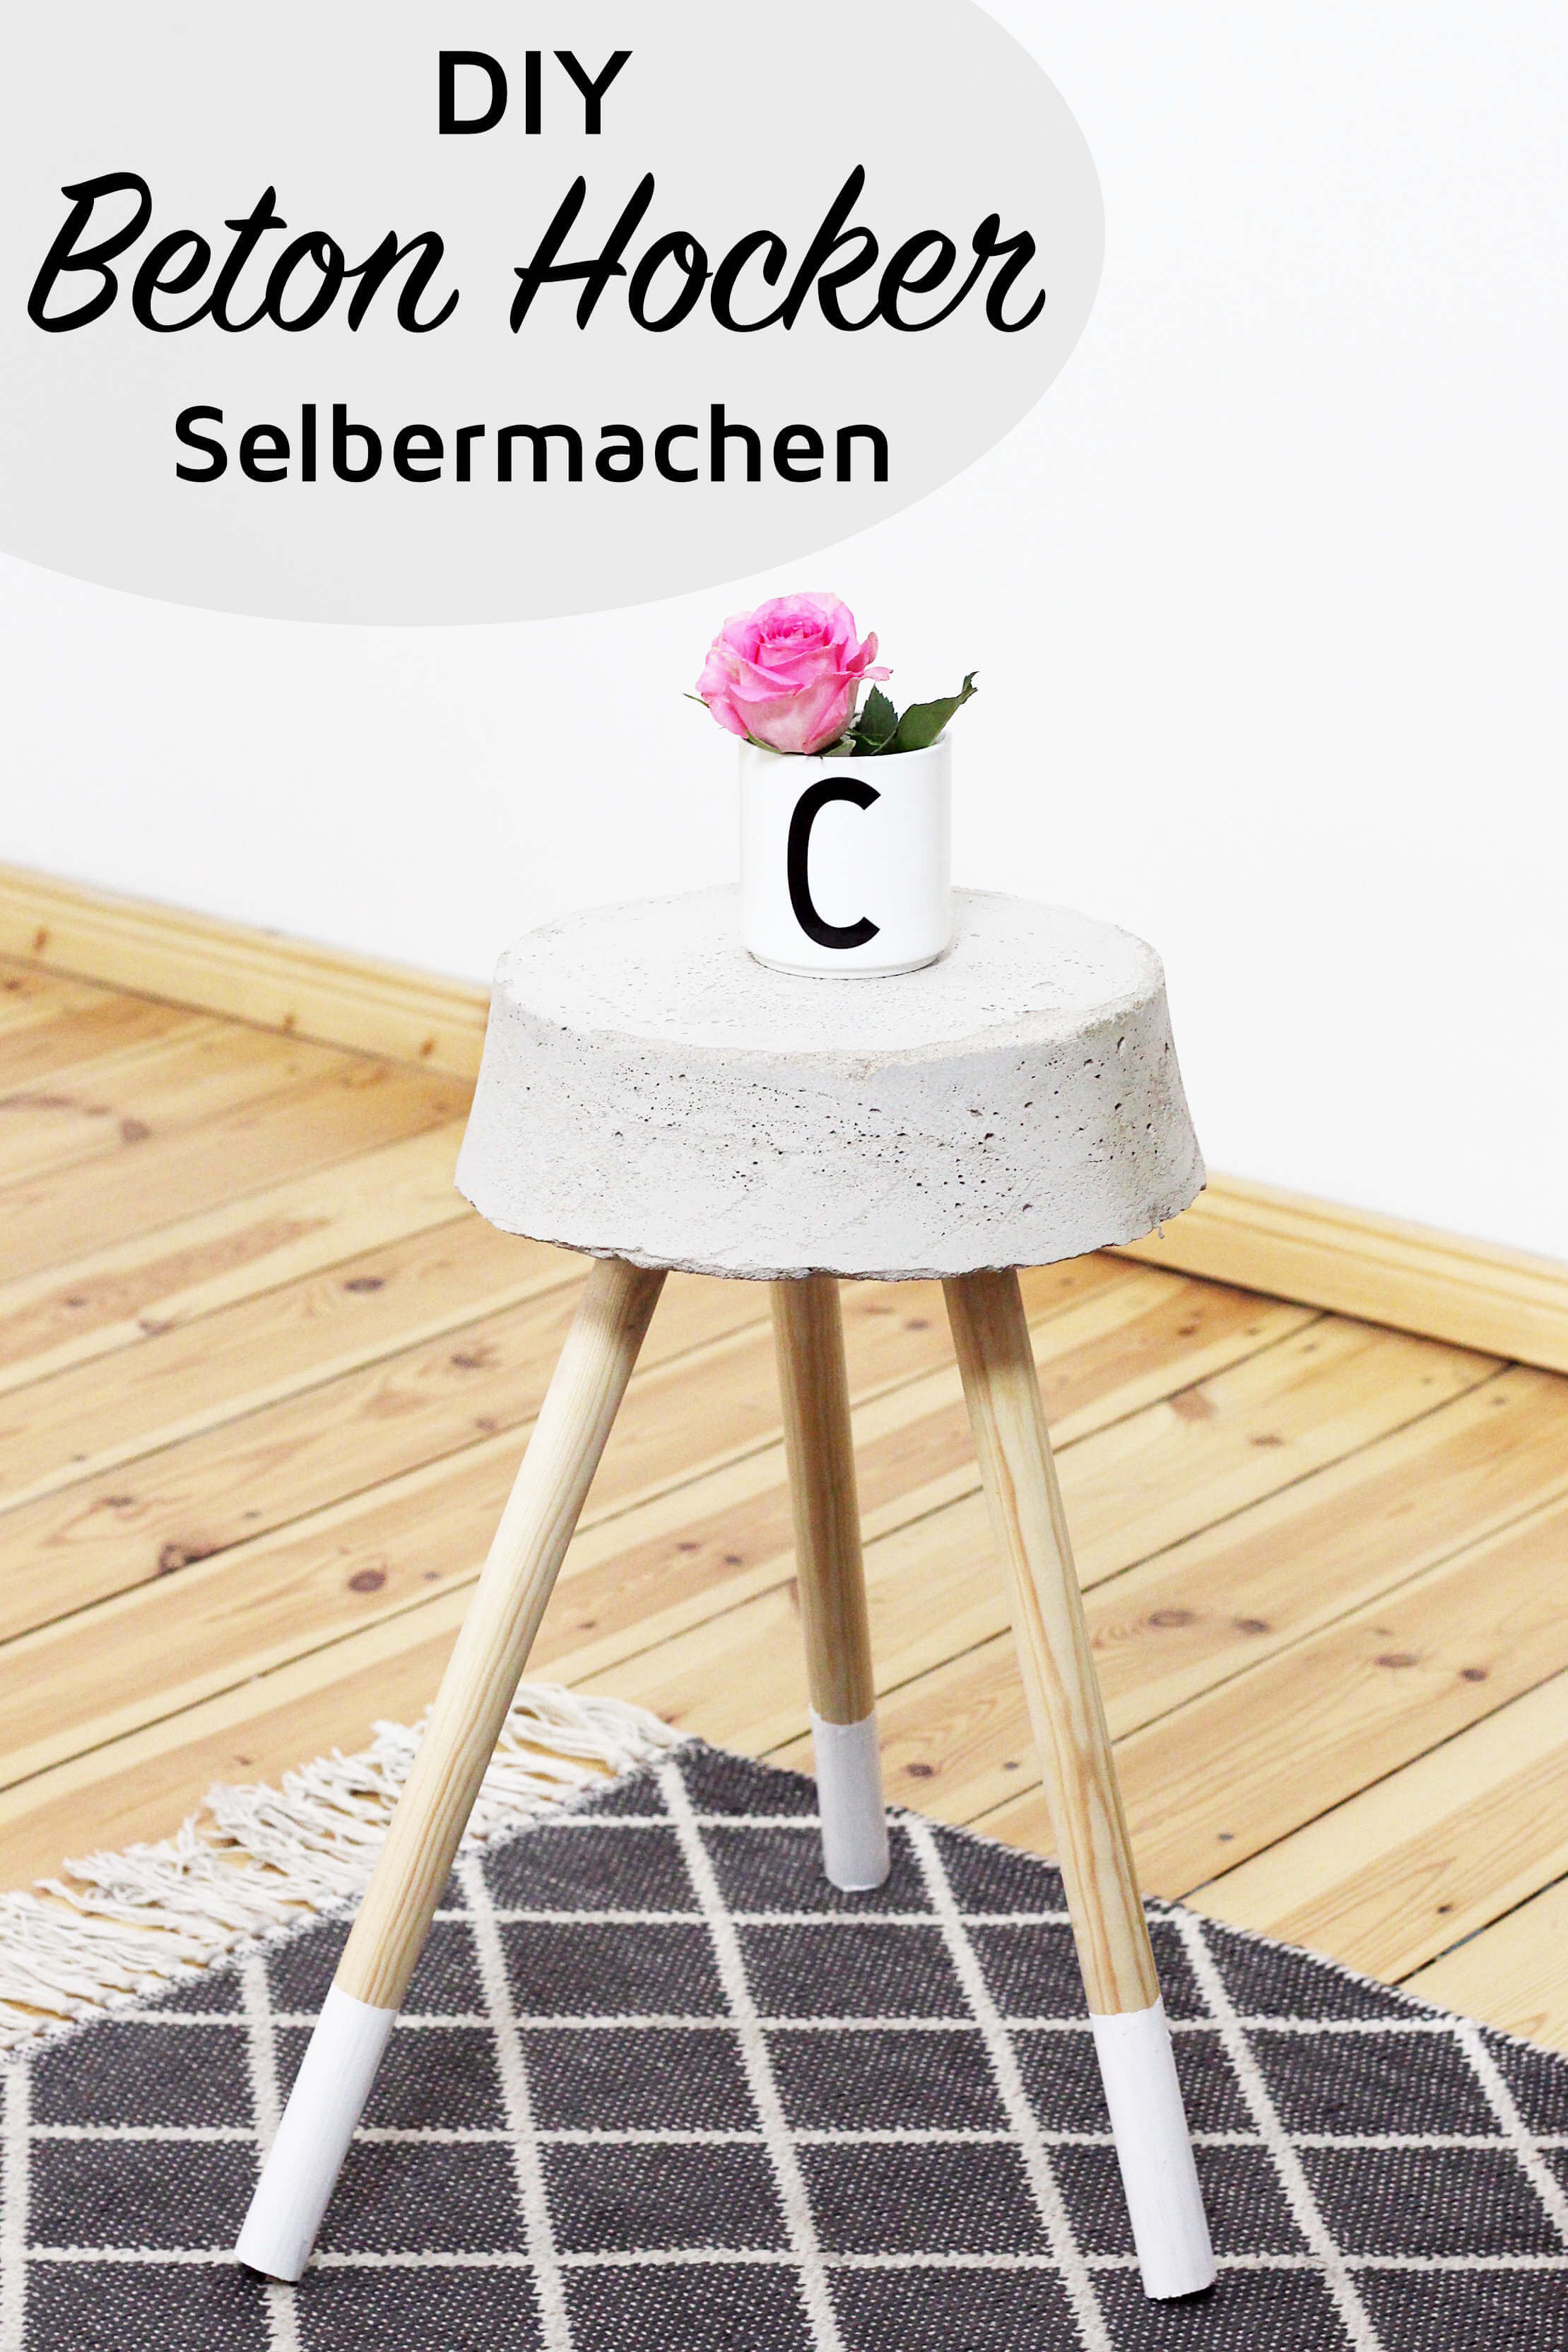 diy-beton-hocker-selbermachen-diy-blog